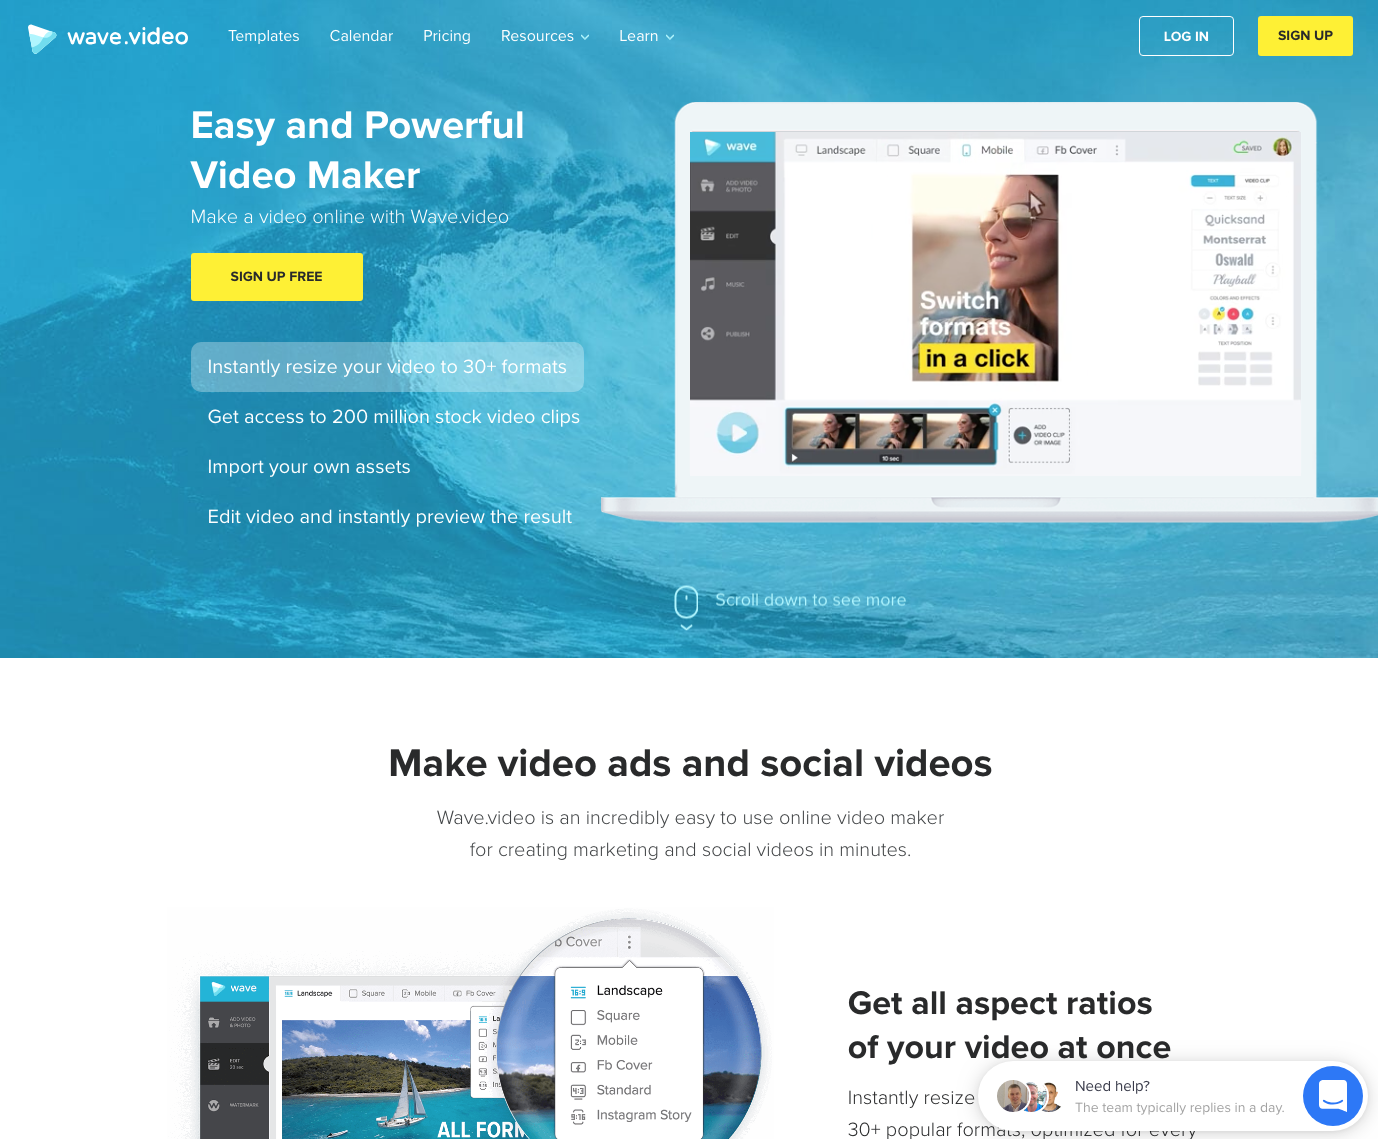 Wave.video website - 67 Awesome Visual Design Tools to Create Stunning Visual Content